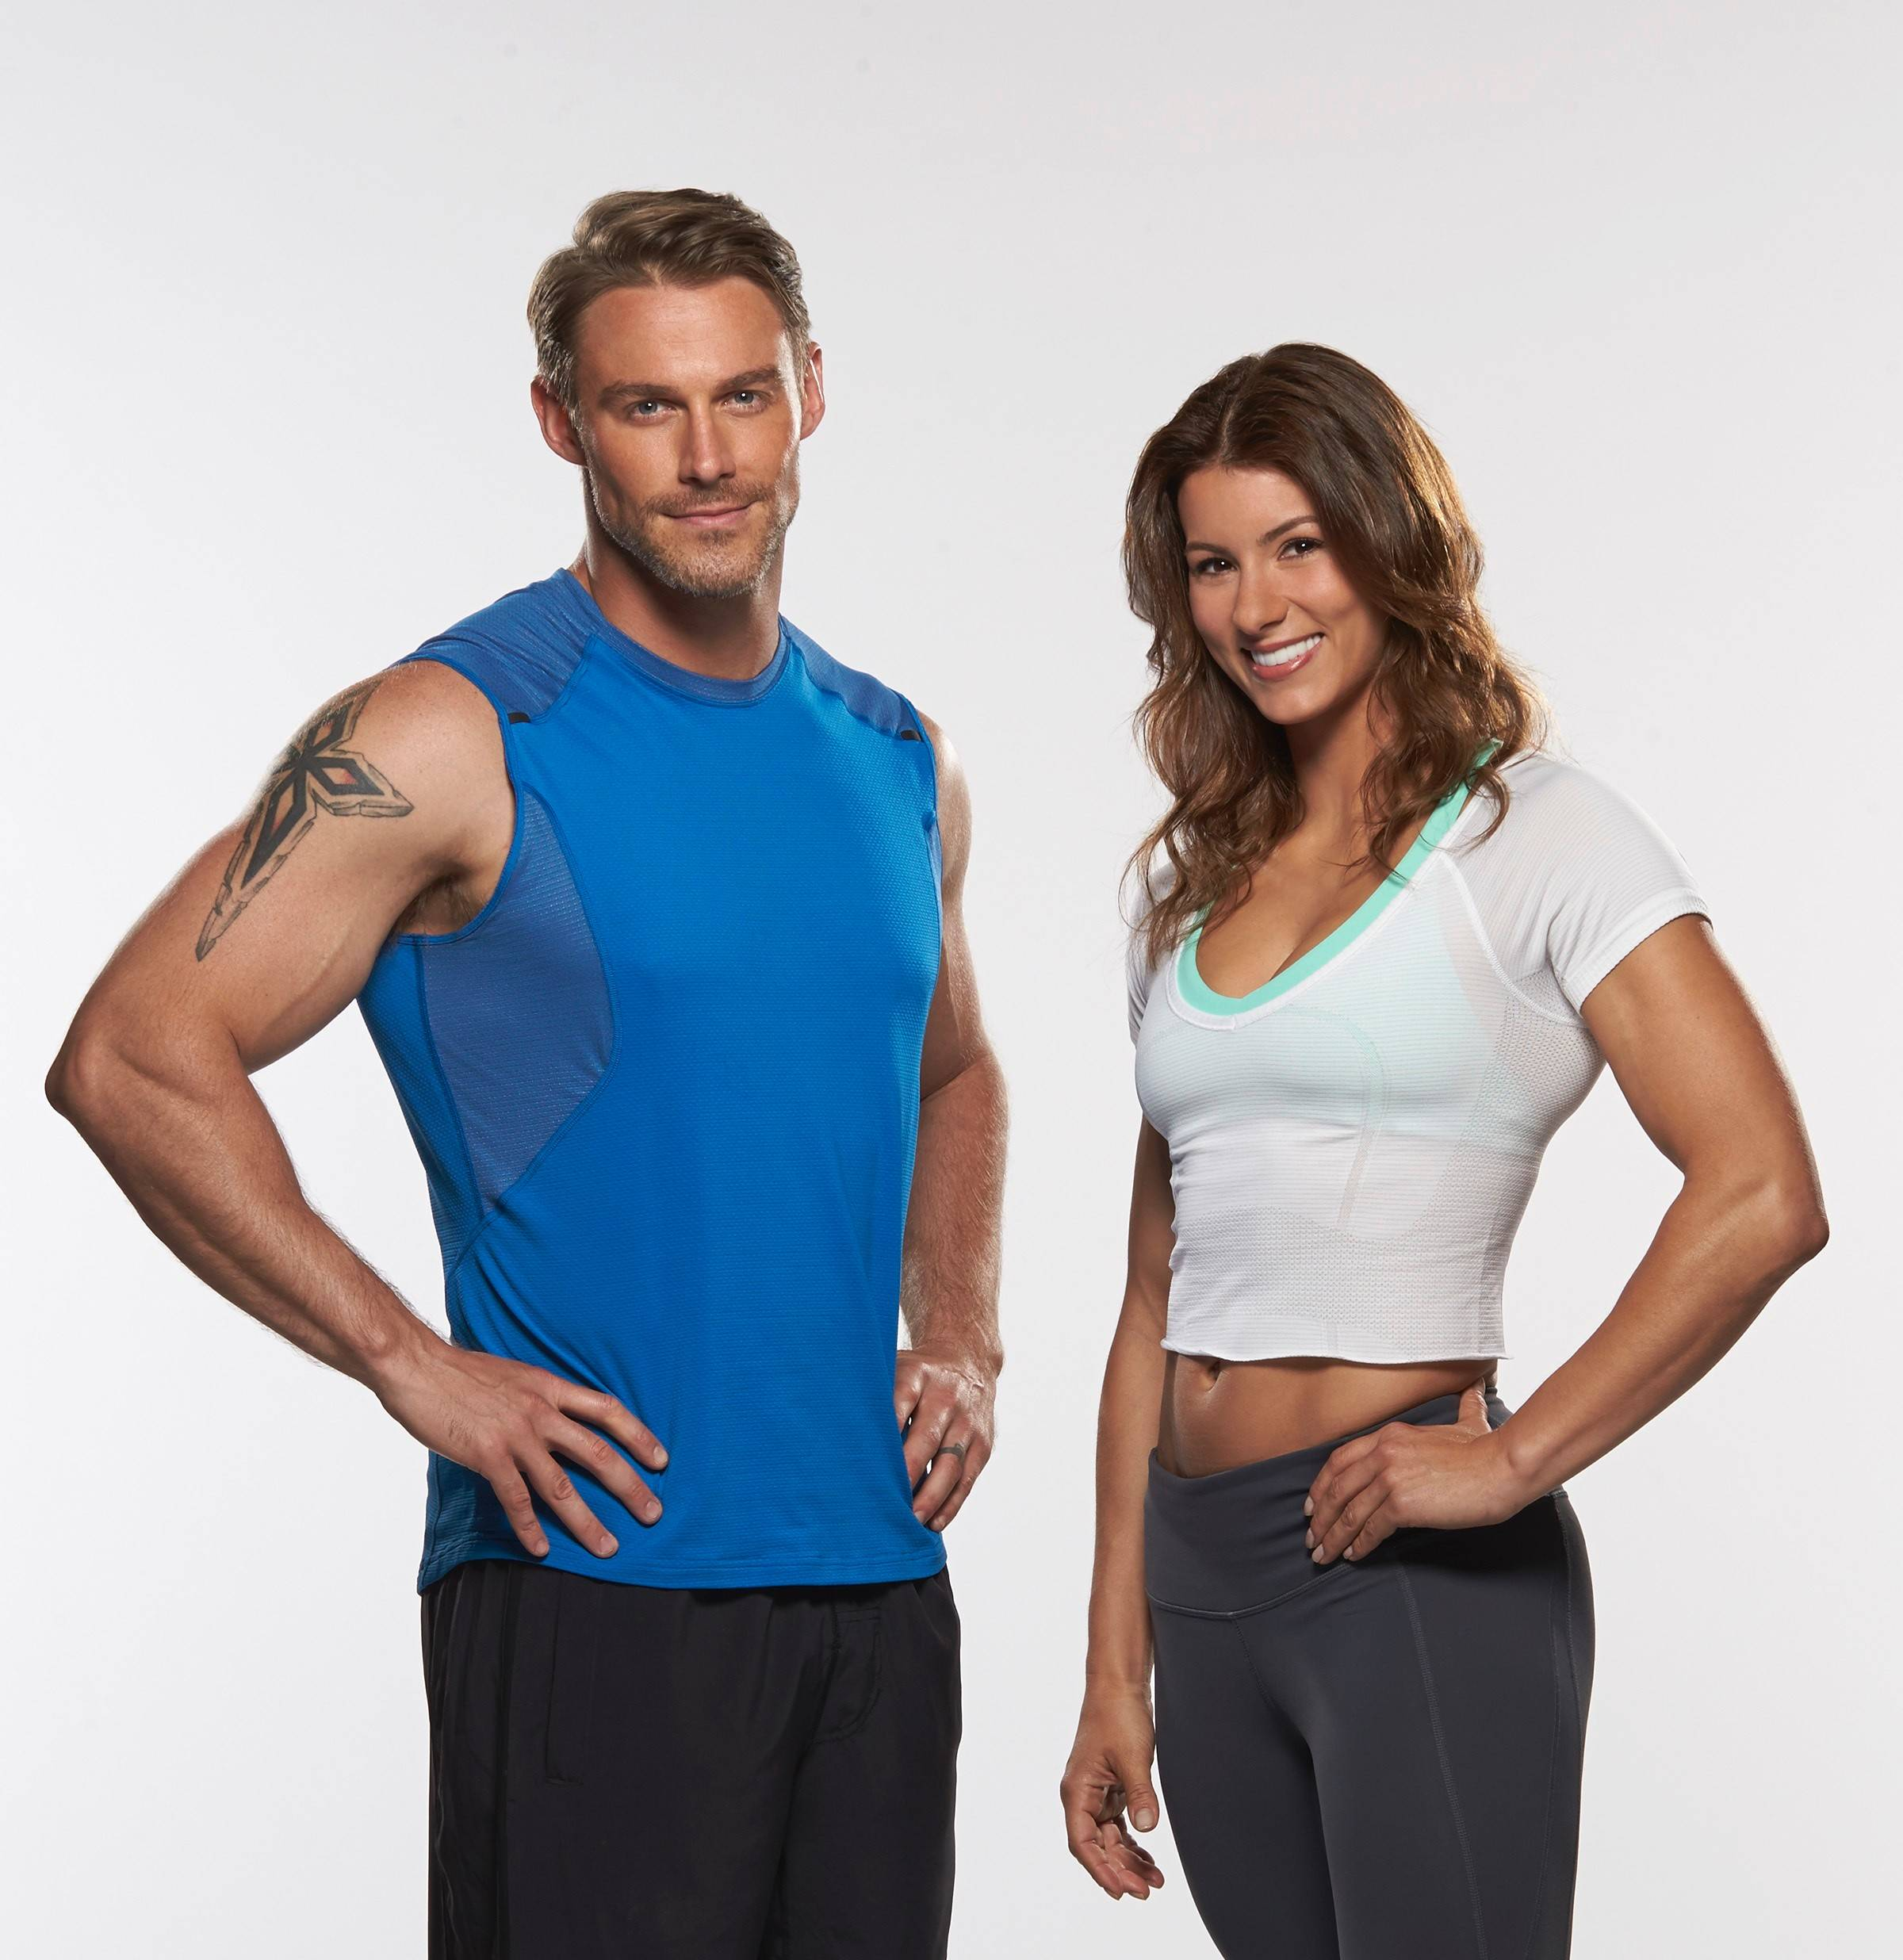 "Jennifer Widerstrom, right, of Lisle, will replace longtime trainer Jillian Michaels on the upcoming season of NBC's ""The Biggest Loser."" She'll join new trainer Jessie Pavelka, right, and Dolvett Quince, not pictured."